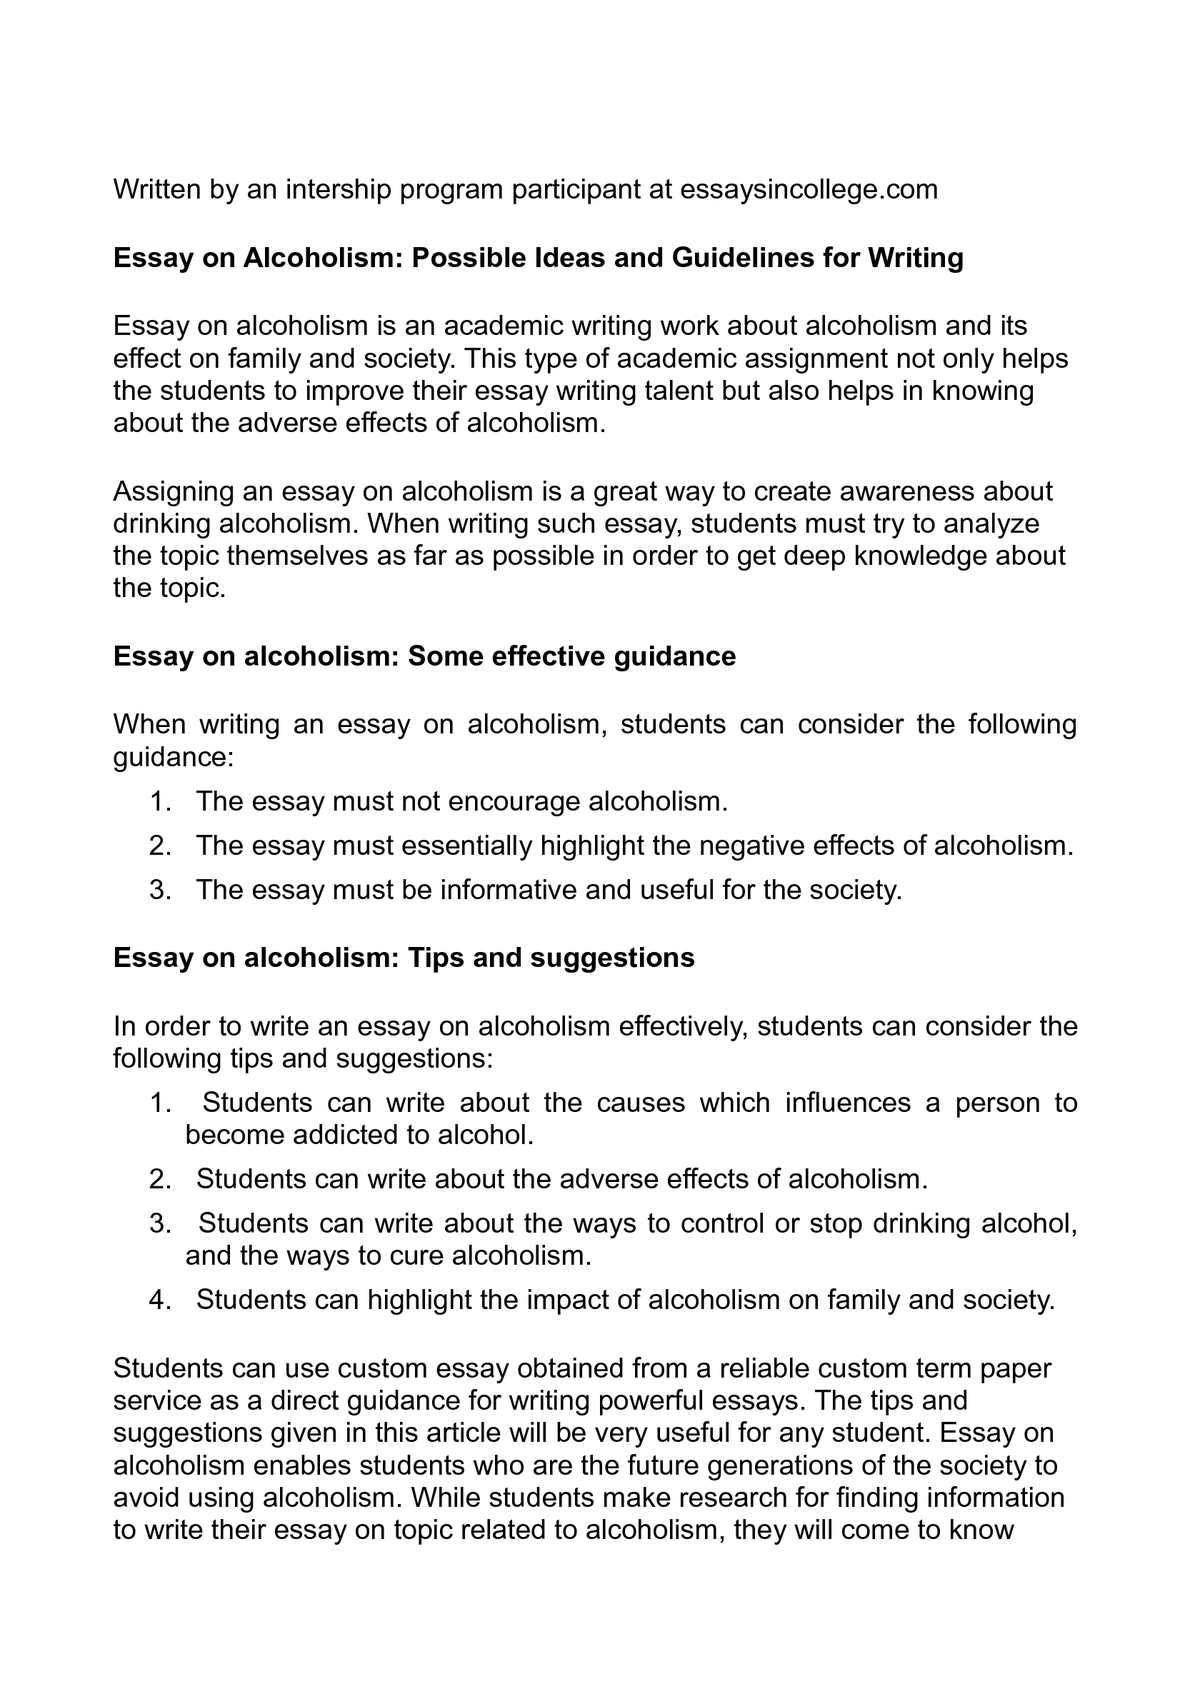 Calamo  Essay On Alcoholism Possible Ideas And Guidelines For Writing